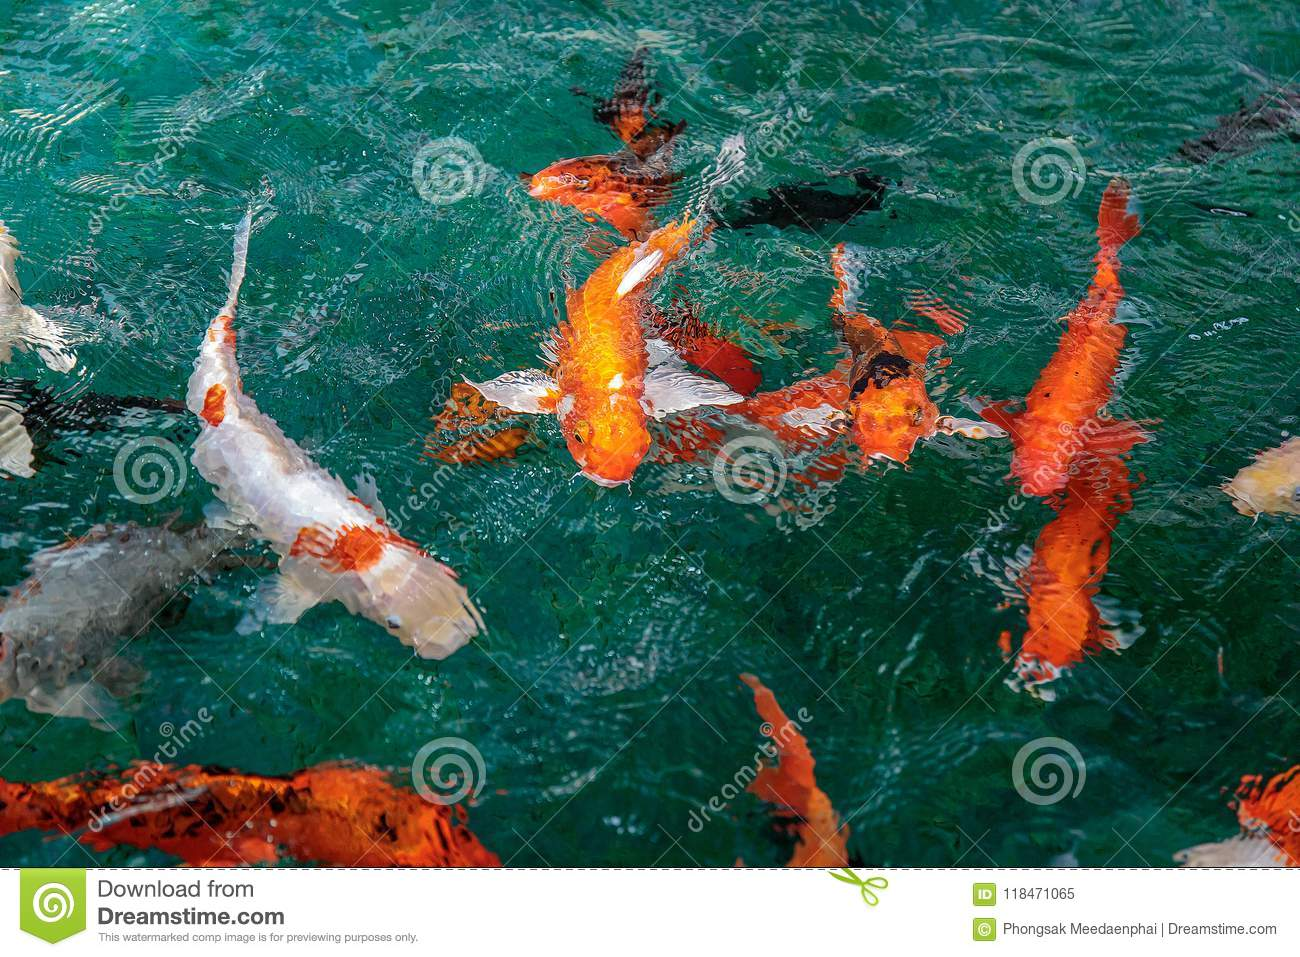 A Lot Of Fancy Carp Or Or Koi Fish Orange Or Gold Color, Swimming In ...